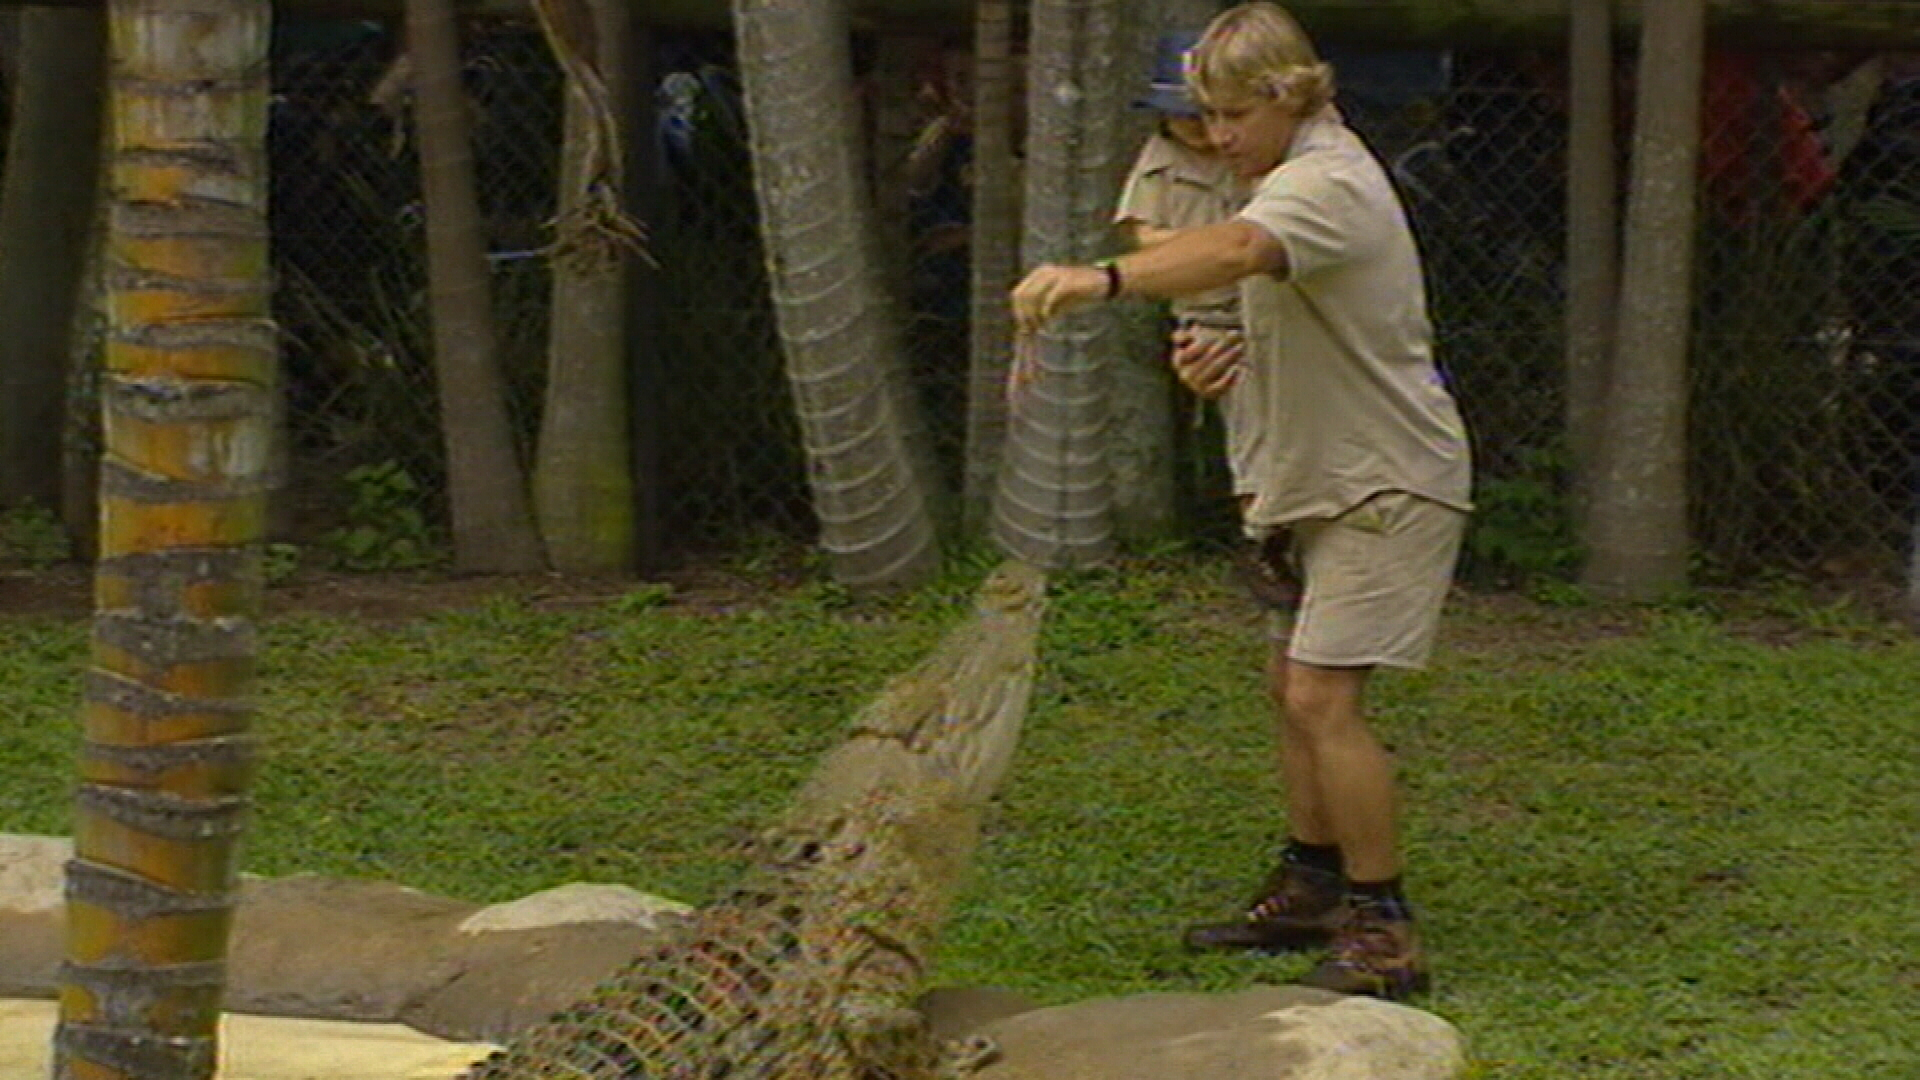 Google Doodle celebrates Steve Irwin, the original Crocodile Hunter